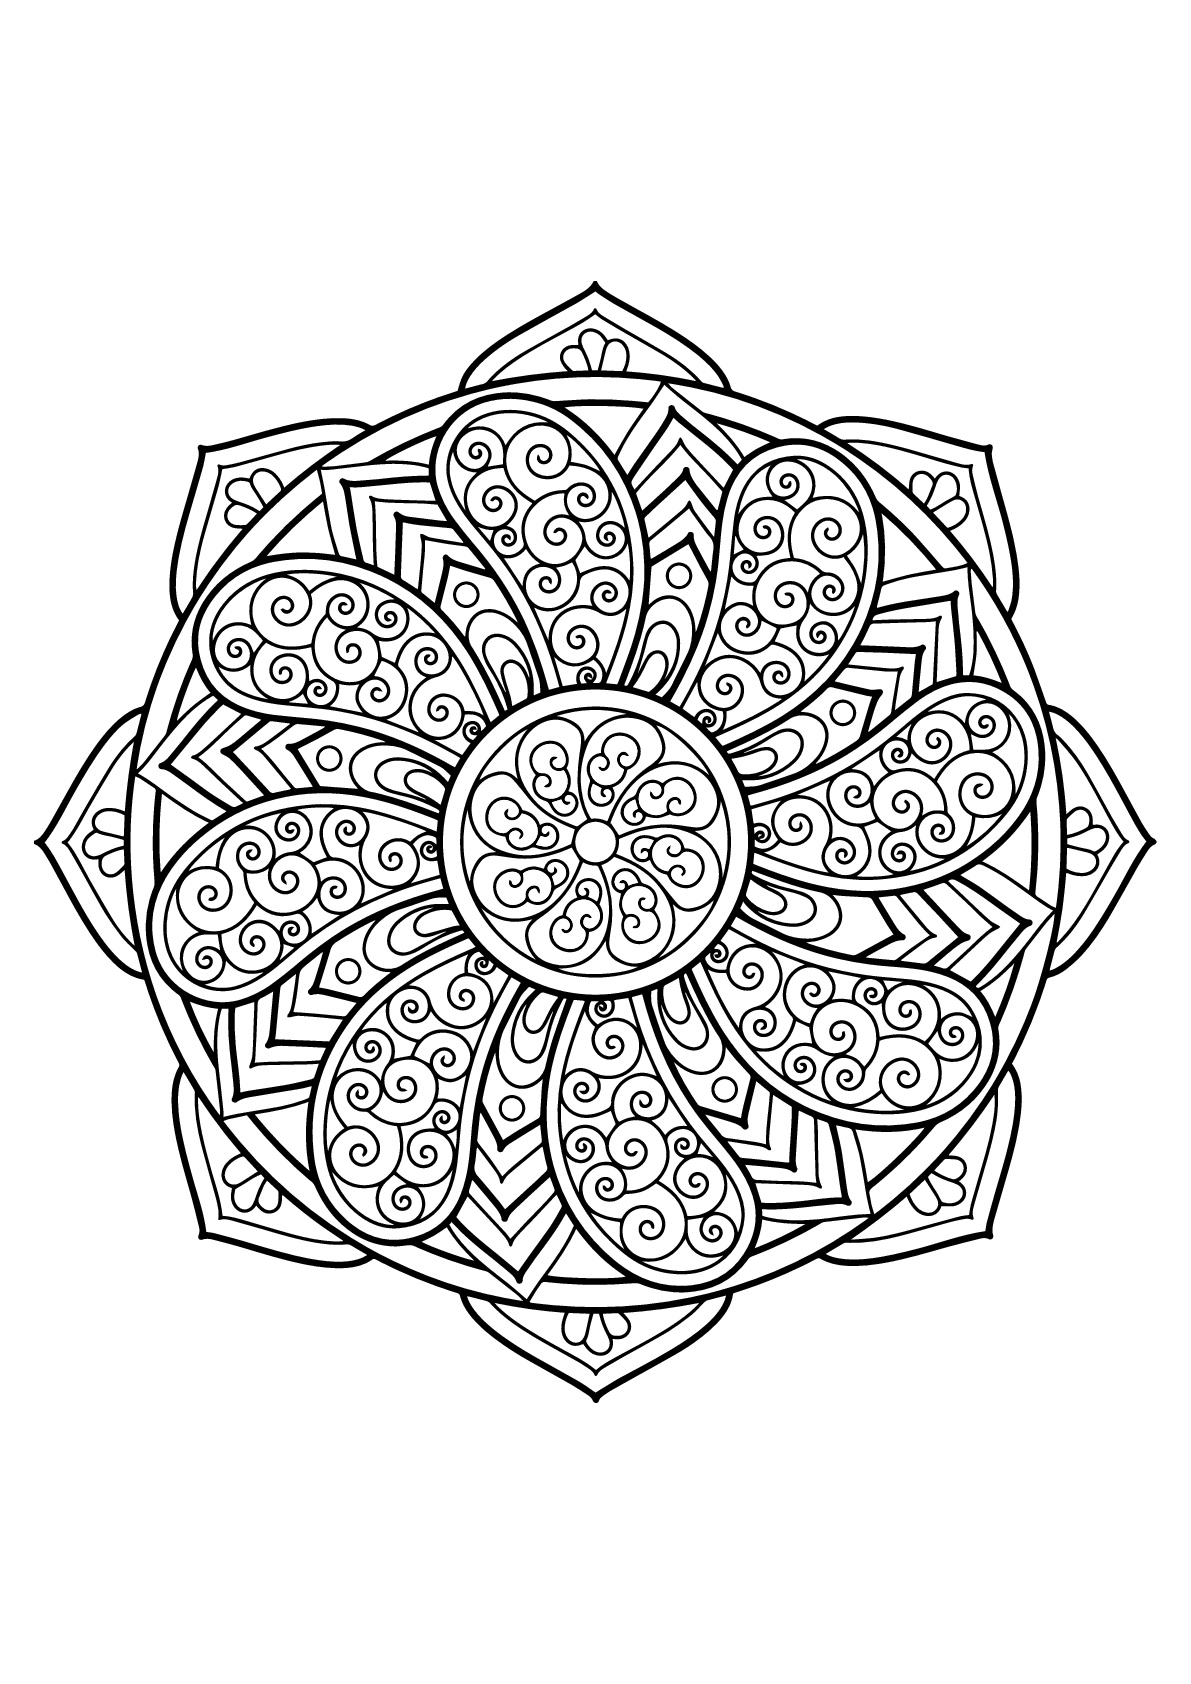 Mandalas - Coloring pages for adults | JustColor